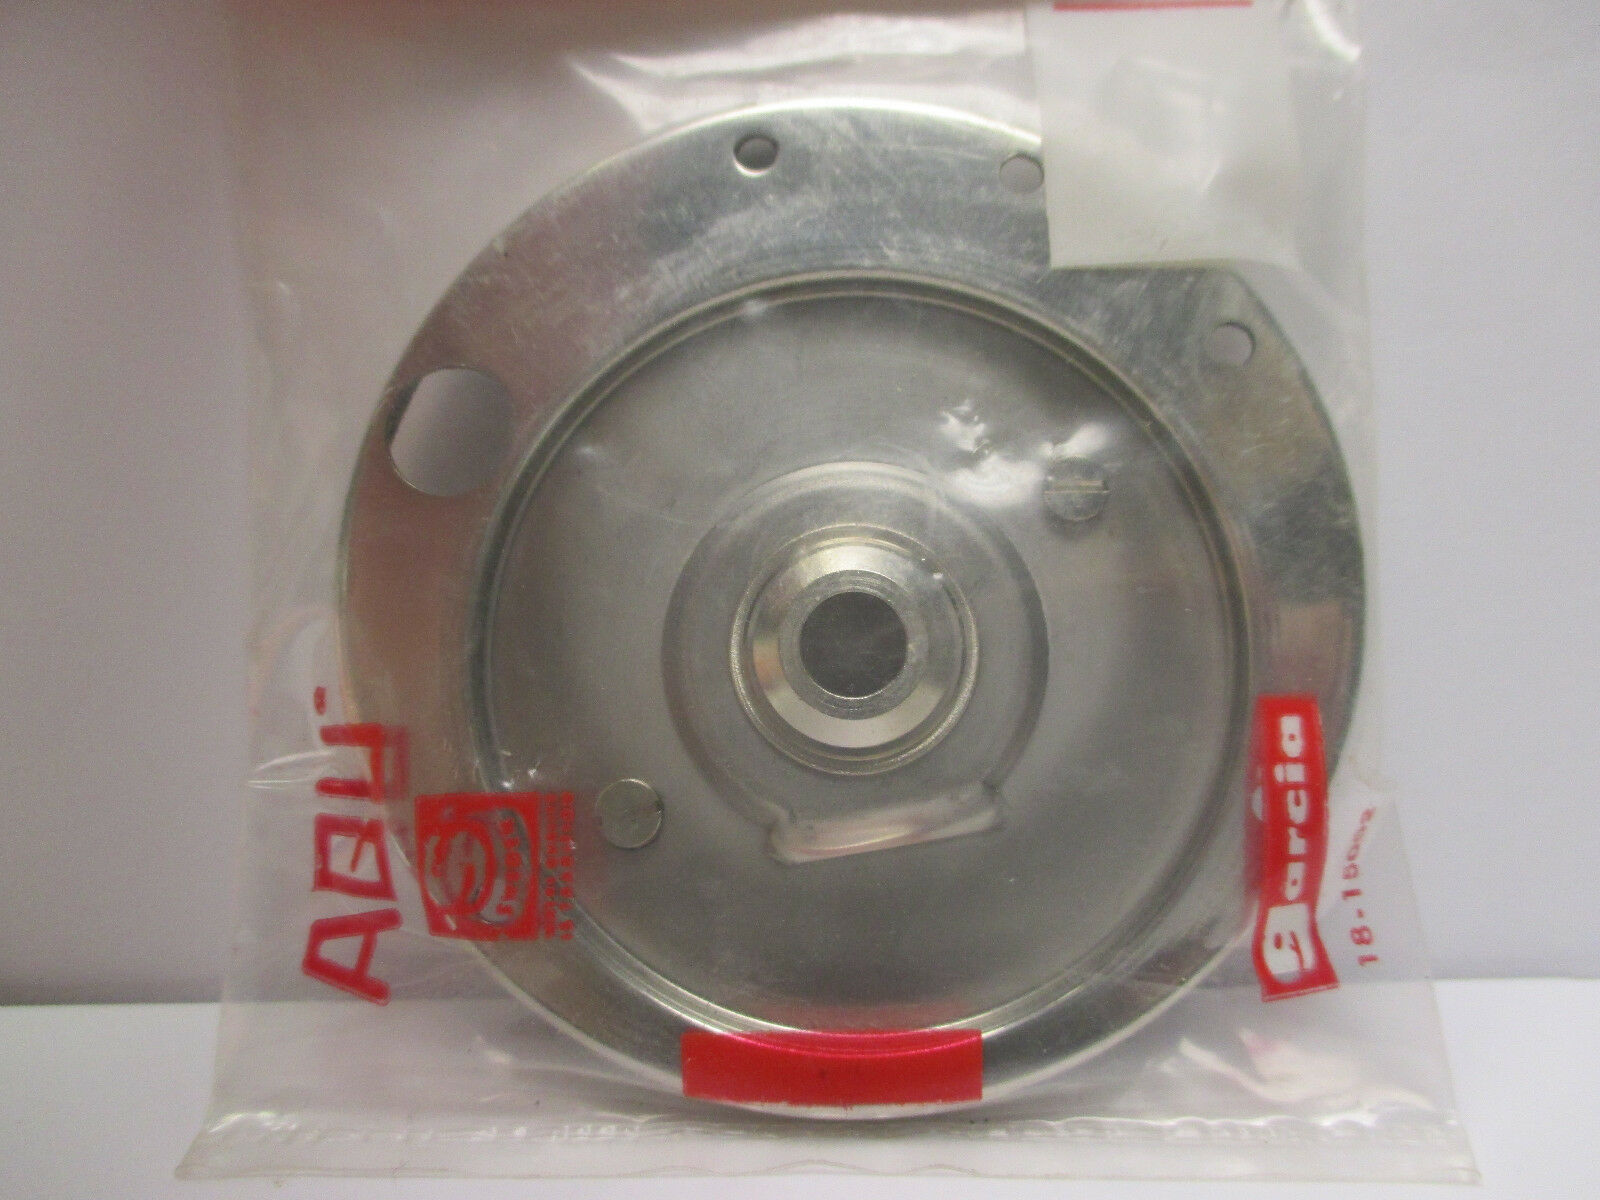 1 Abu Garcia Part# 15046 Line Carriage Complete Fits 9000CL and 10000CL